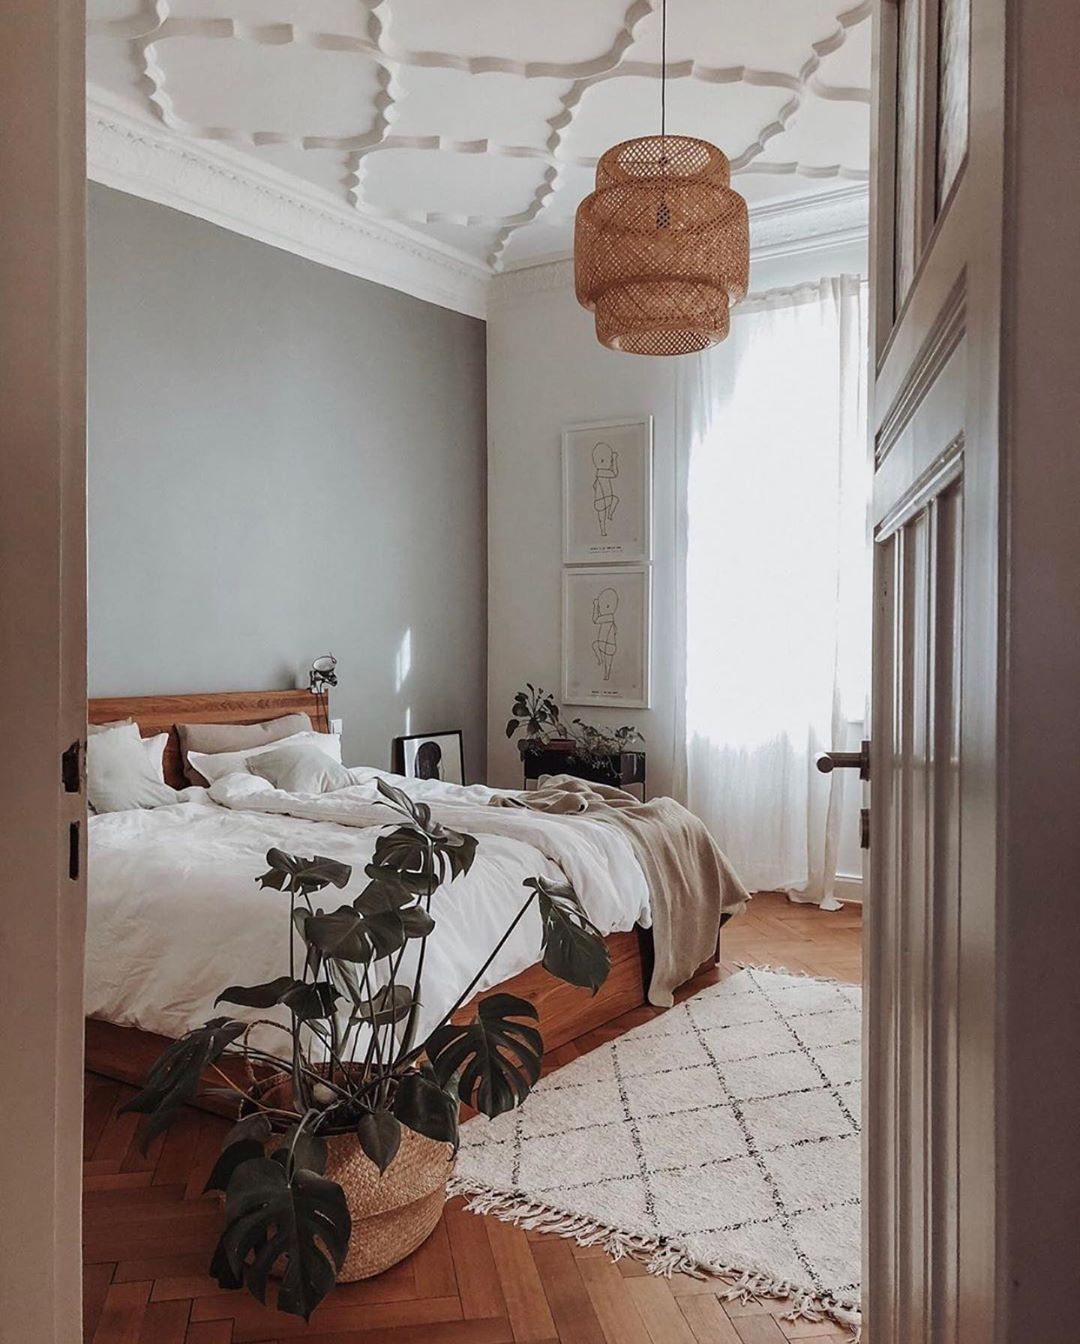 Bedroom Inspiration Morninglandscapes Posted On Instagram Aug 28 2020 At 8 03am Utc In 2020 Home Decor Scandinavian Home My Scandinavian Home